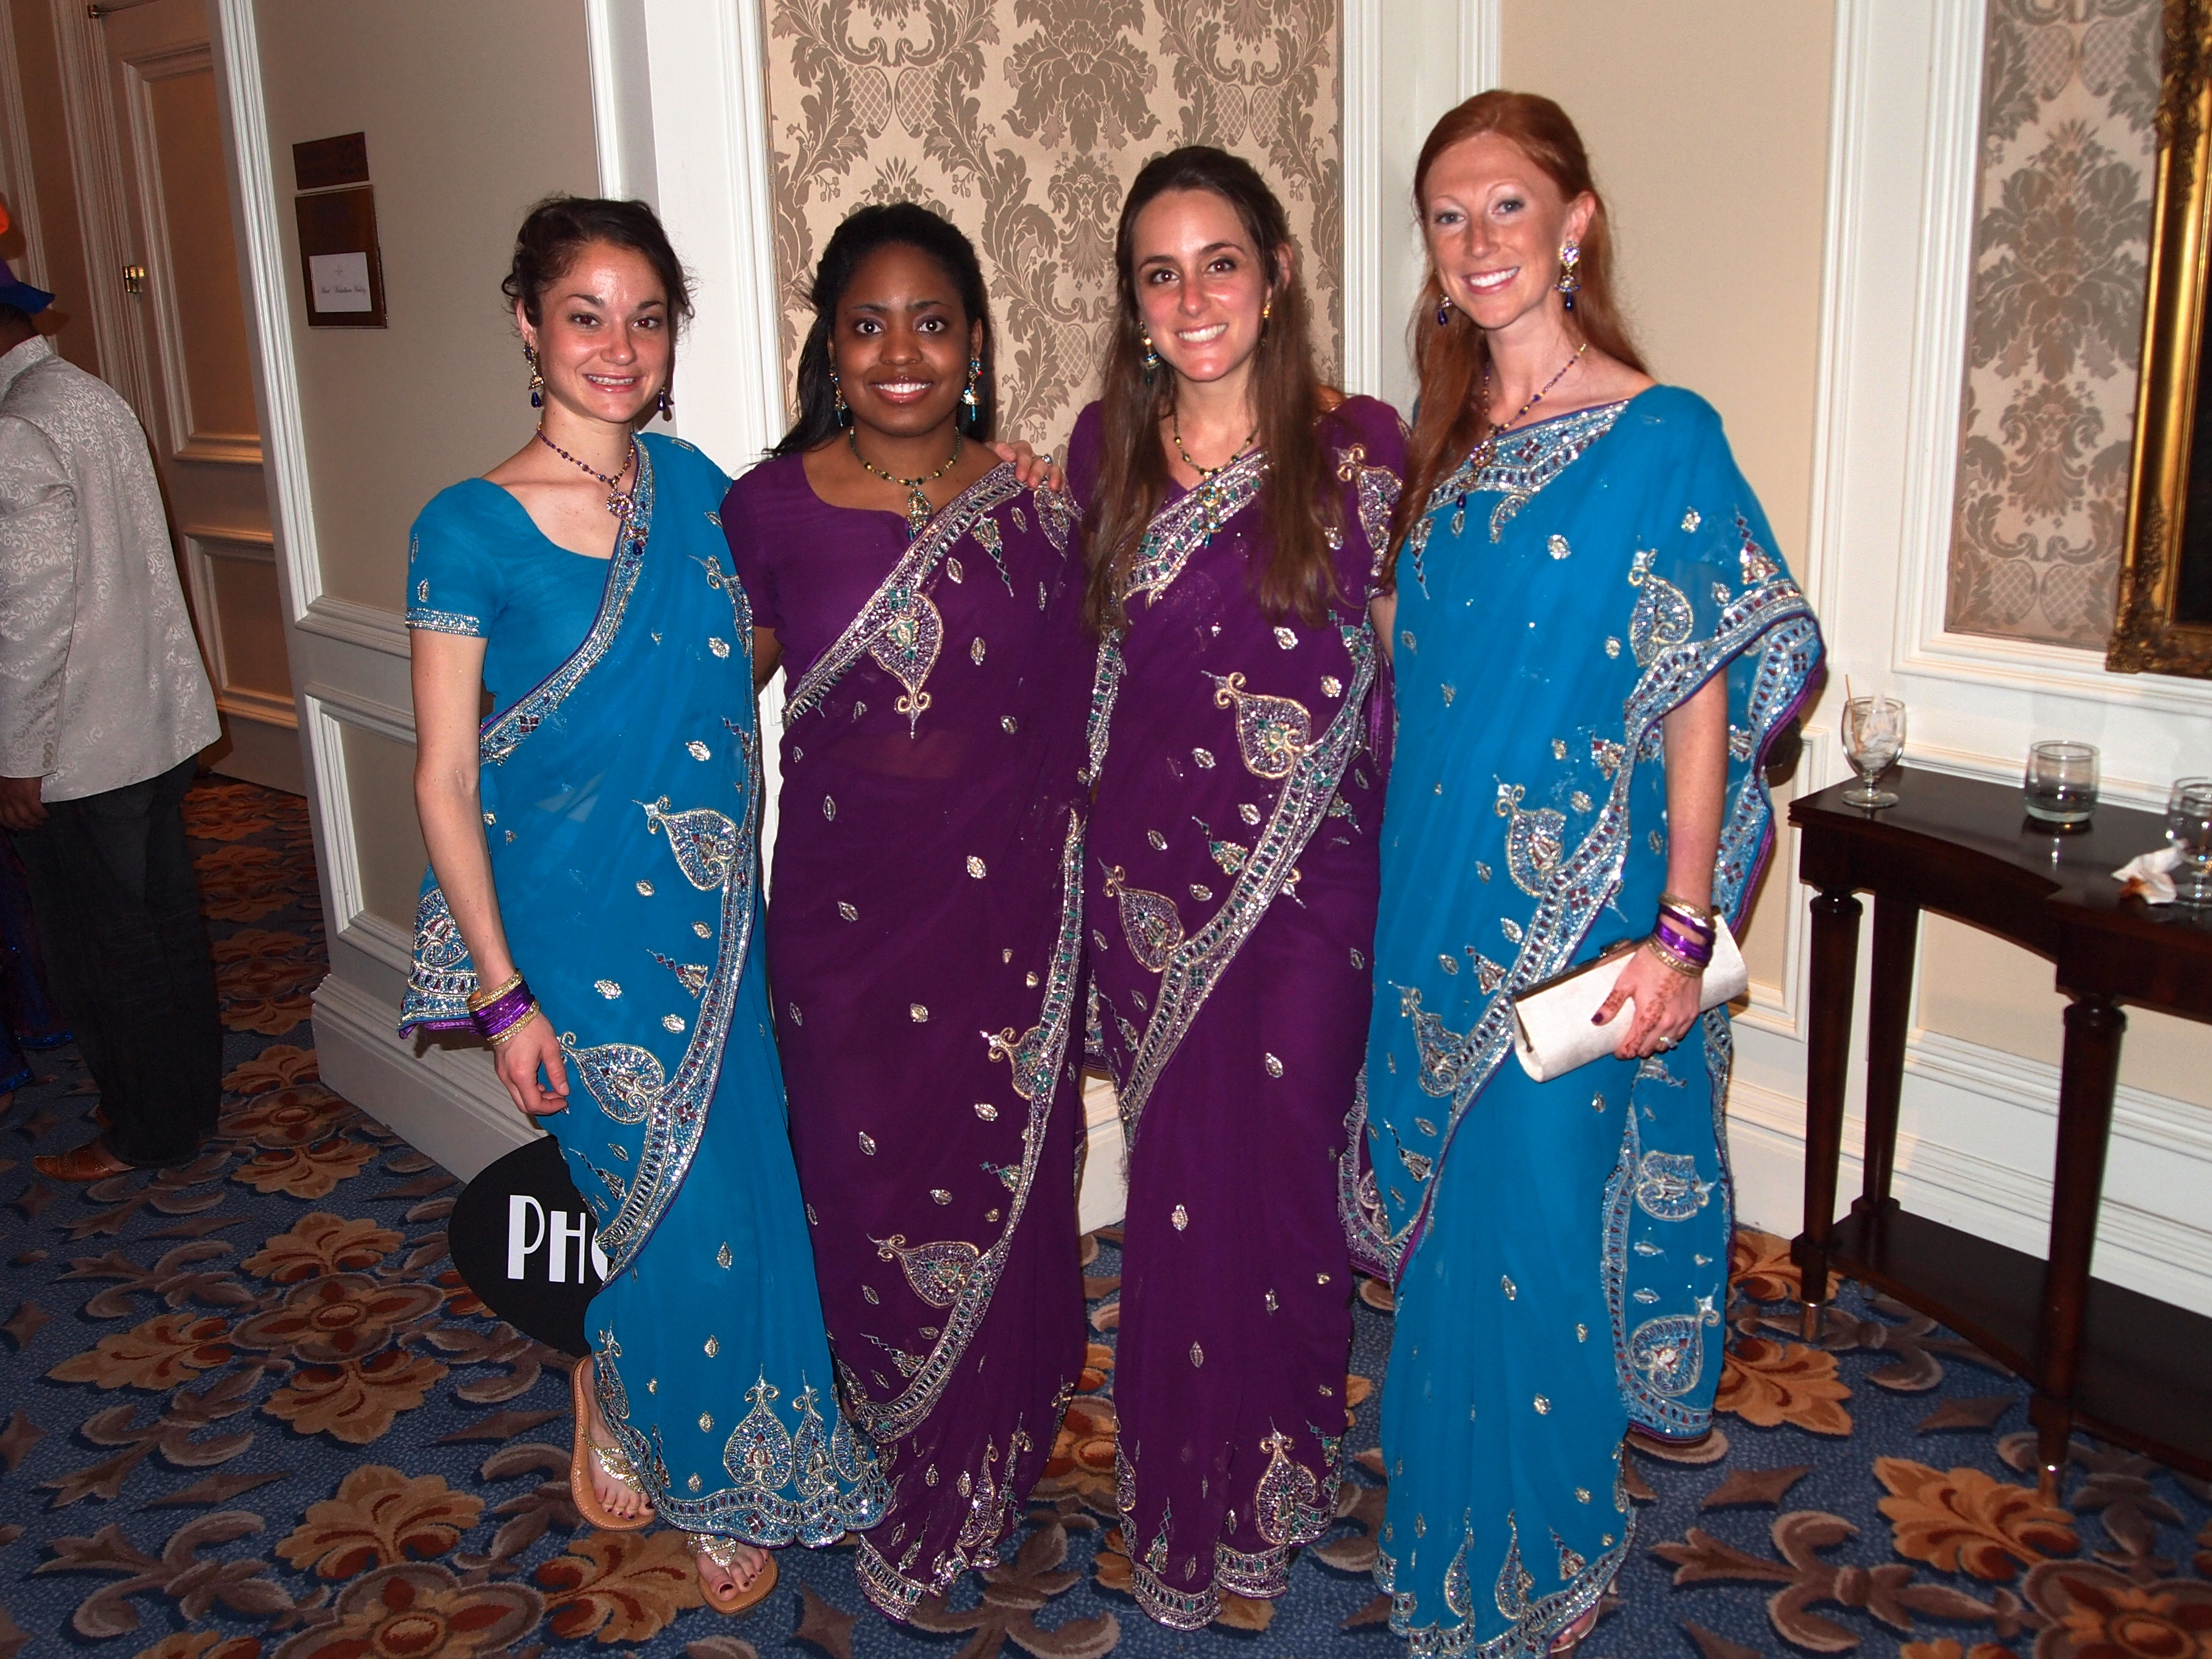 Hindu Wedding Gifts For Guests: Indian Wedding Traditions